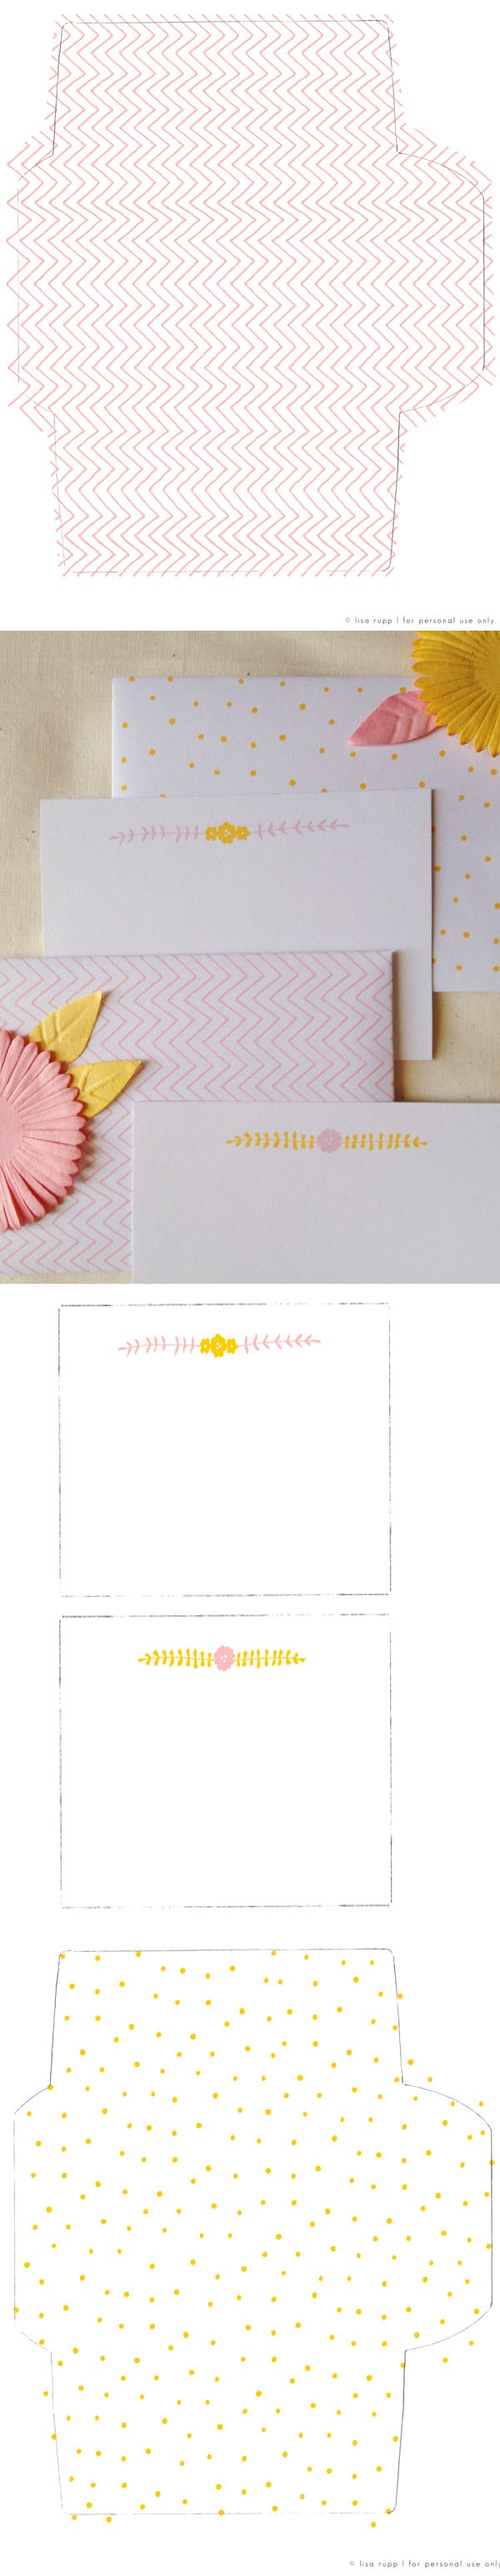 Best 20 free printable stationery ideas on pinterest for Paper source templates place cards